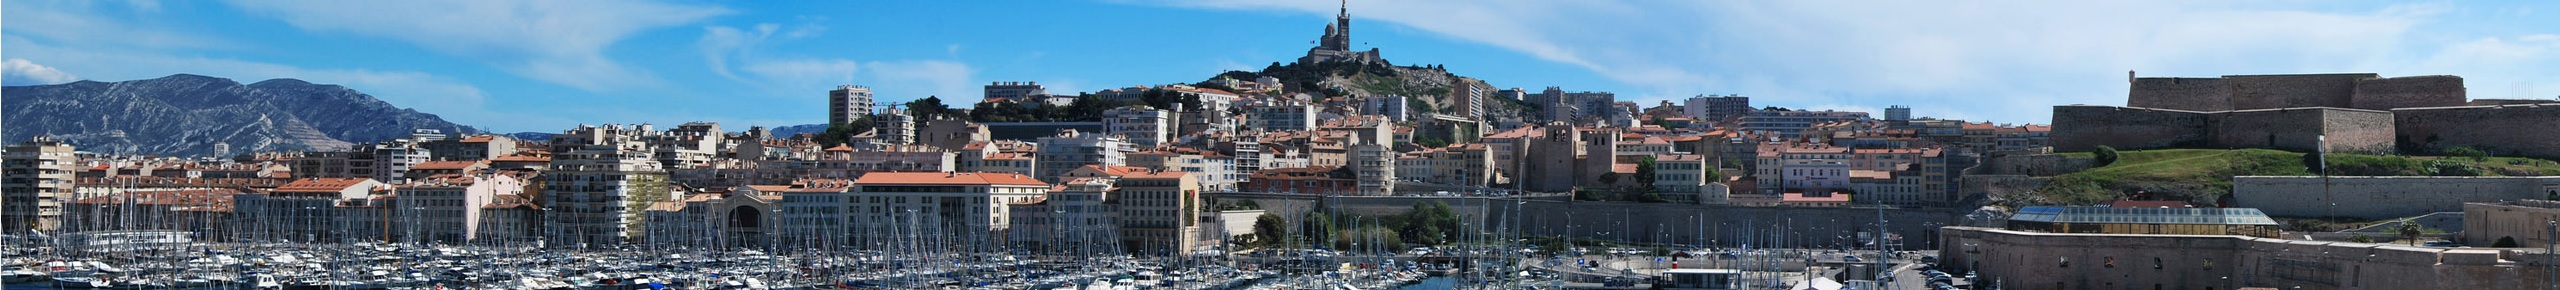 images/bandeau/marseille-port.jpg